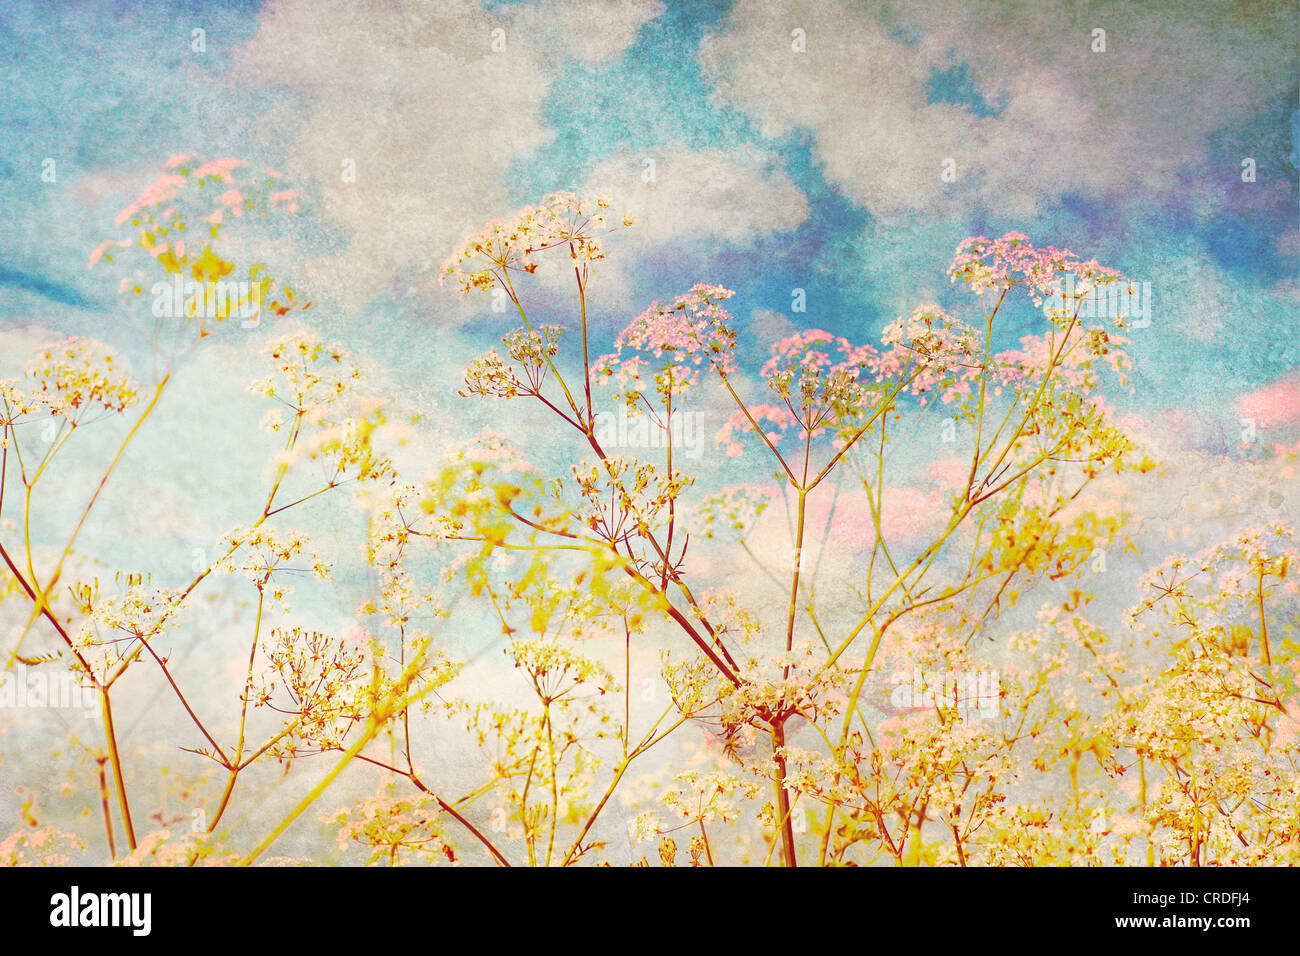 White wildflowers and blue sky, artistic grunge background - Stock Image